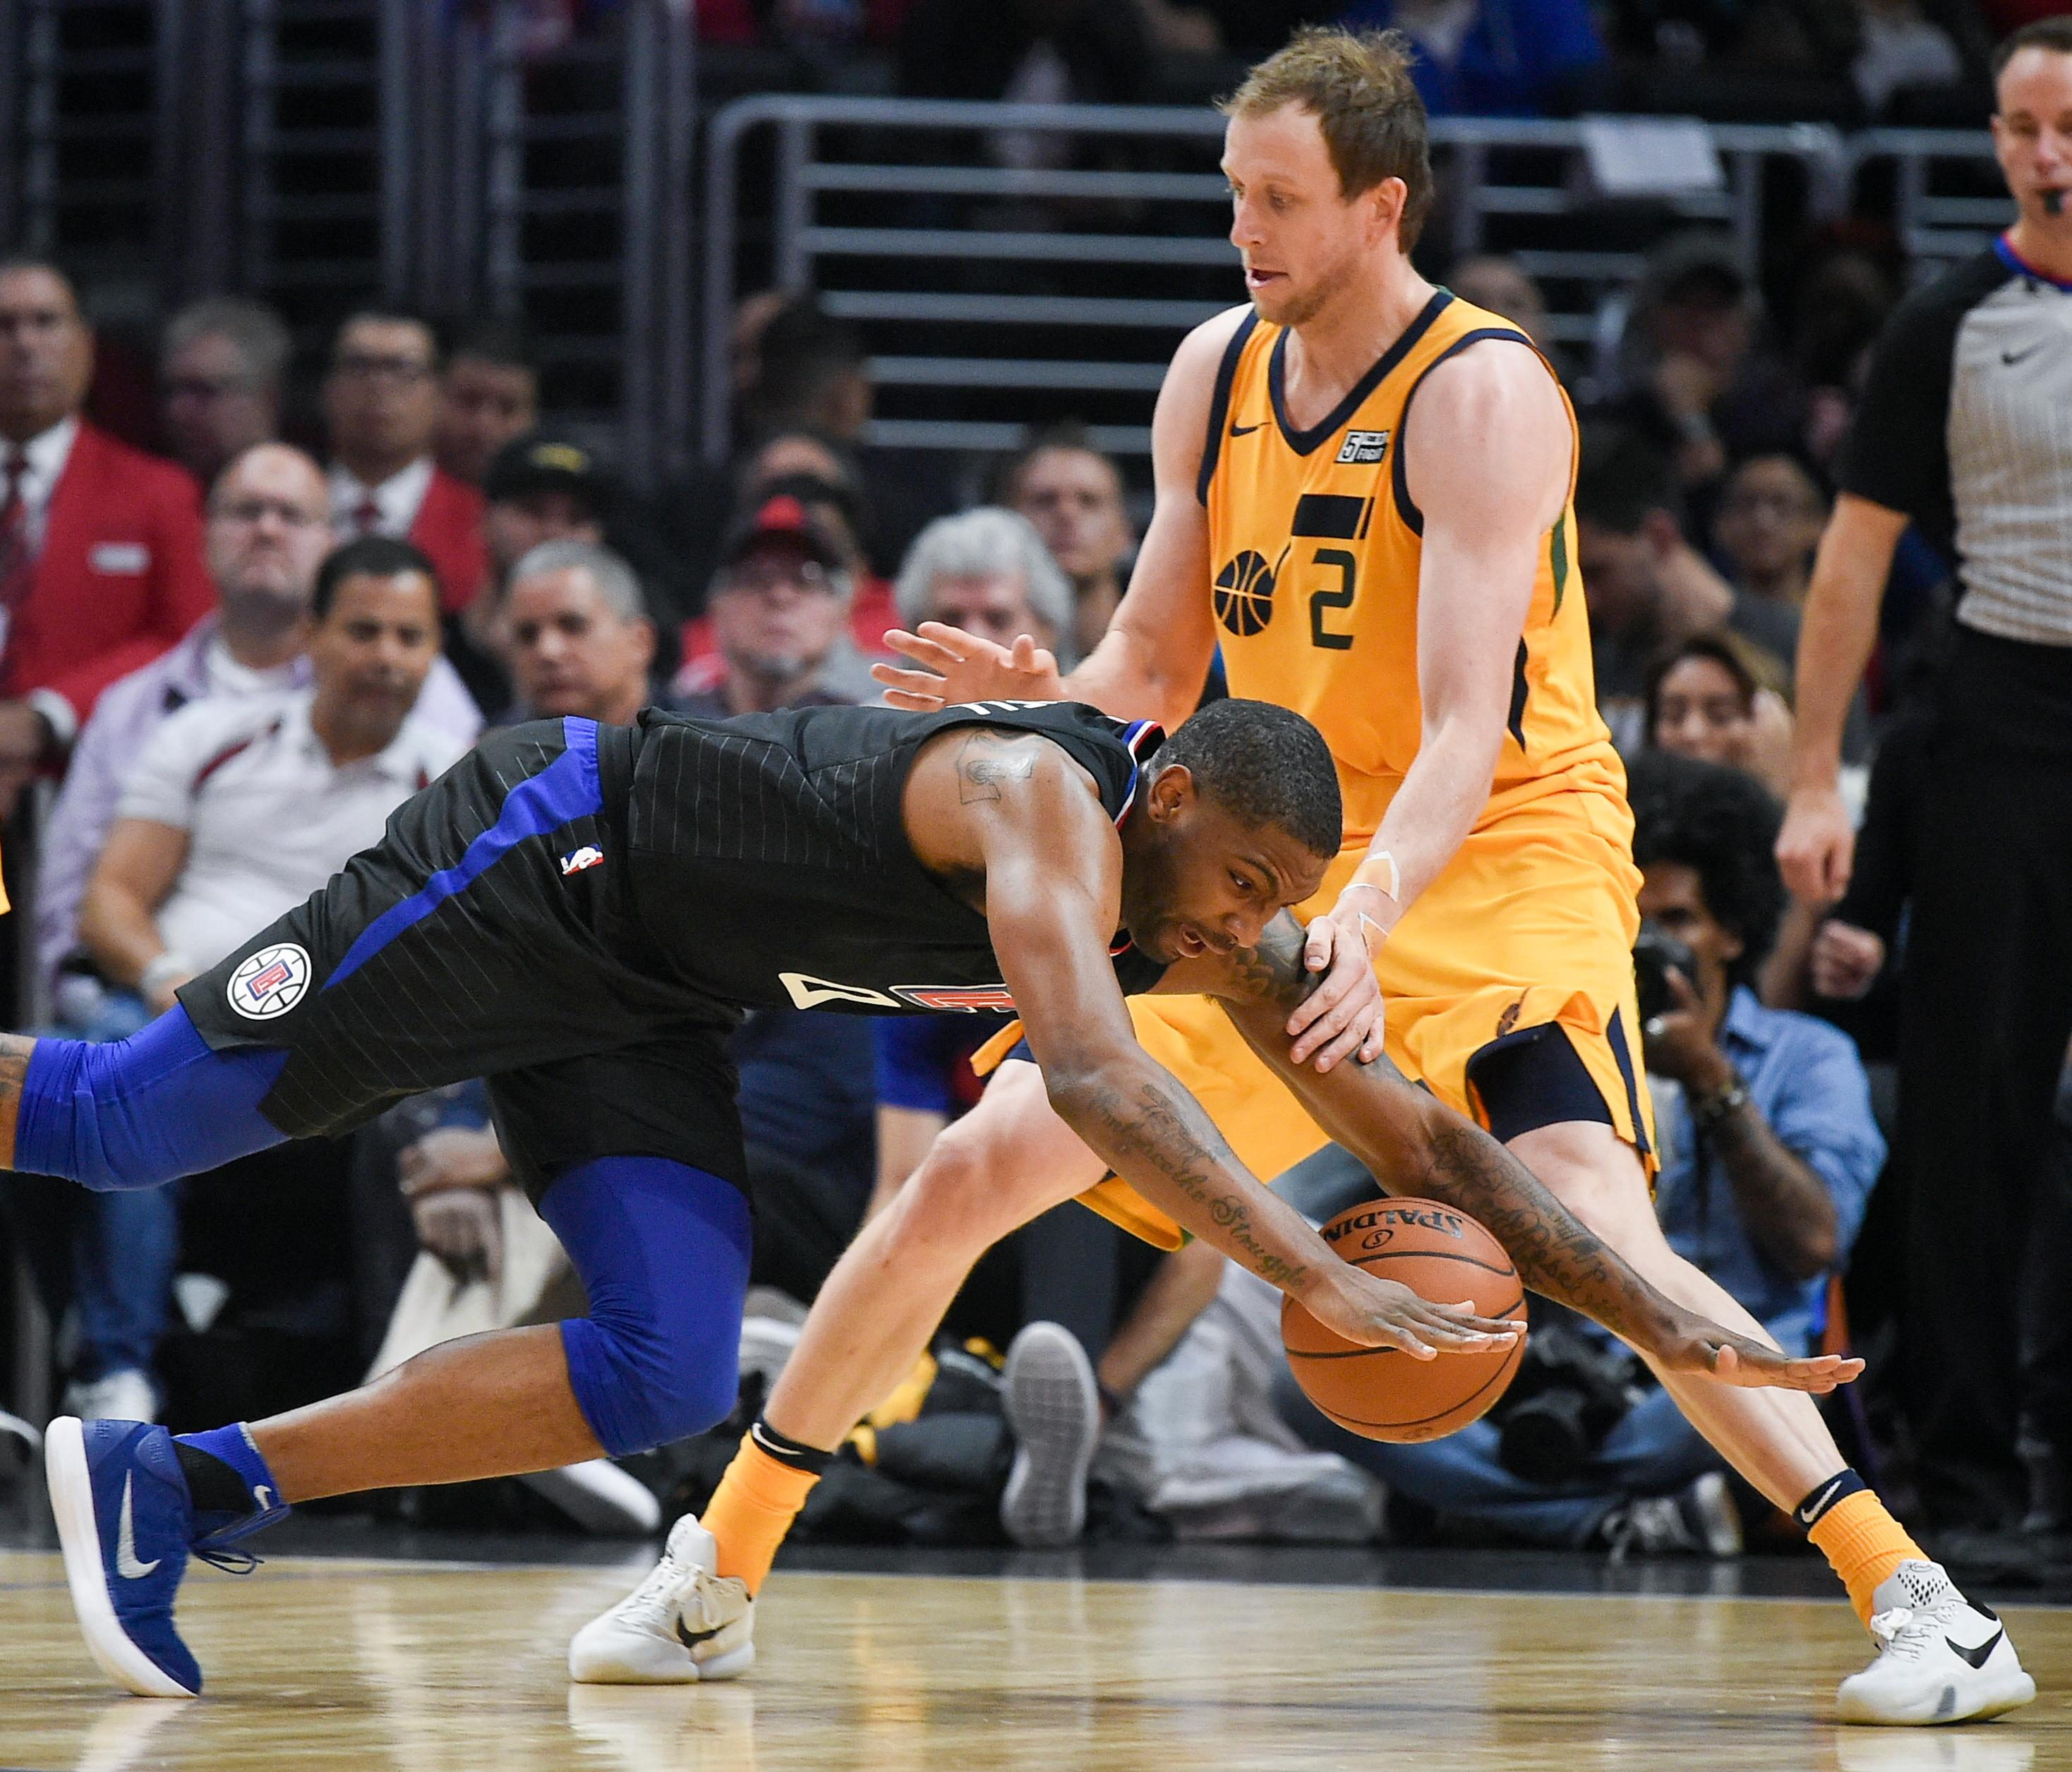 Los Angeles Clippers guard Sindarius Thornwell, front, loses the ball as he falls to the court while Utah Jazz forward Joe Ingles defends during the first half of an NBA basketball game in Los Angeles, Thursday, Nov. 30, 2017. (AP Photo/Kelvin Kuo)